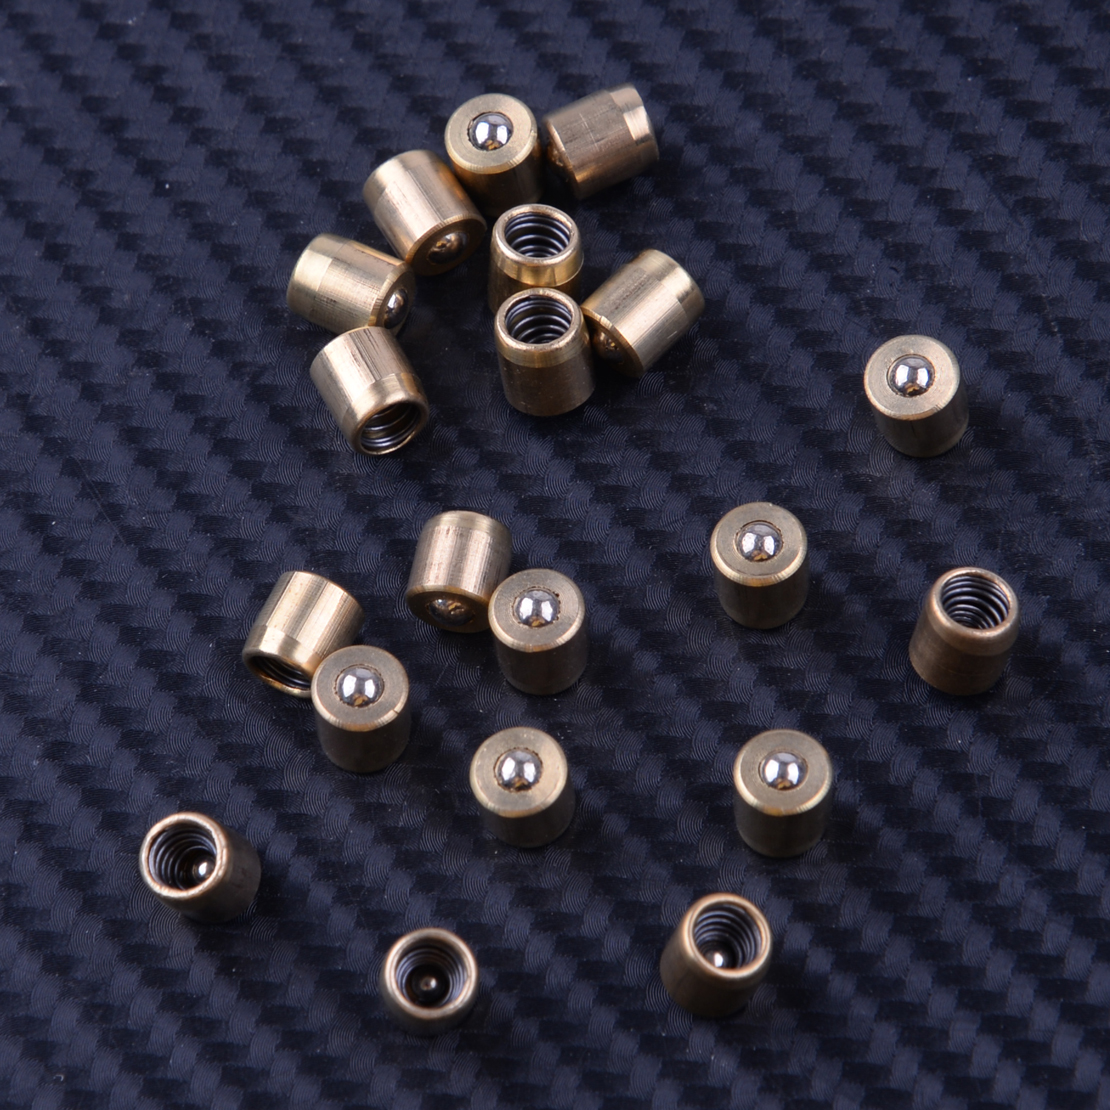 LETAOSK 20pcs 0.6x0.6cm Brass Push Button Press Fit For Ball Oiler Nipple Hit & Miss Engine Motor Lathe Mill|Tool Parts|   - AliExpress